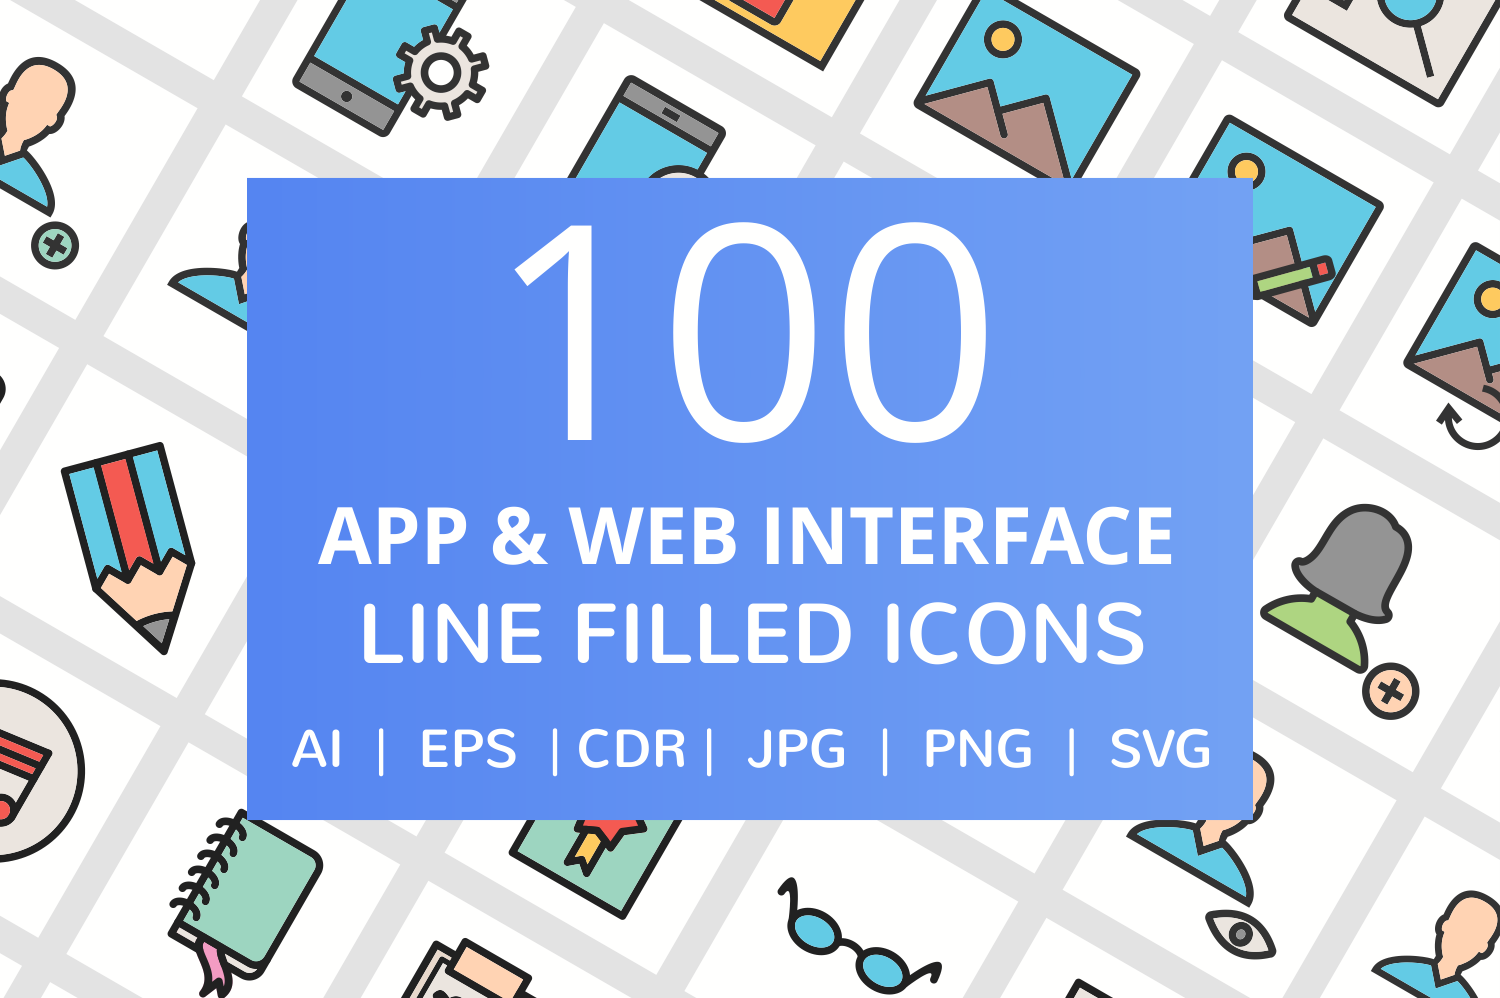 100 App & Web Interface Filled Line Icons example image 1